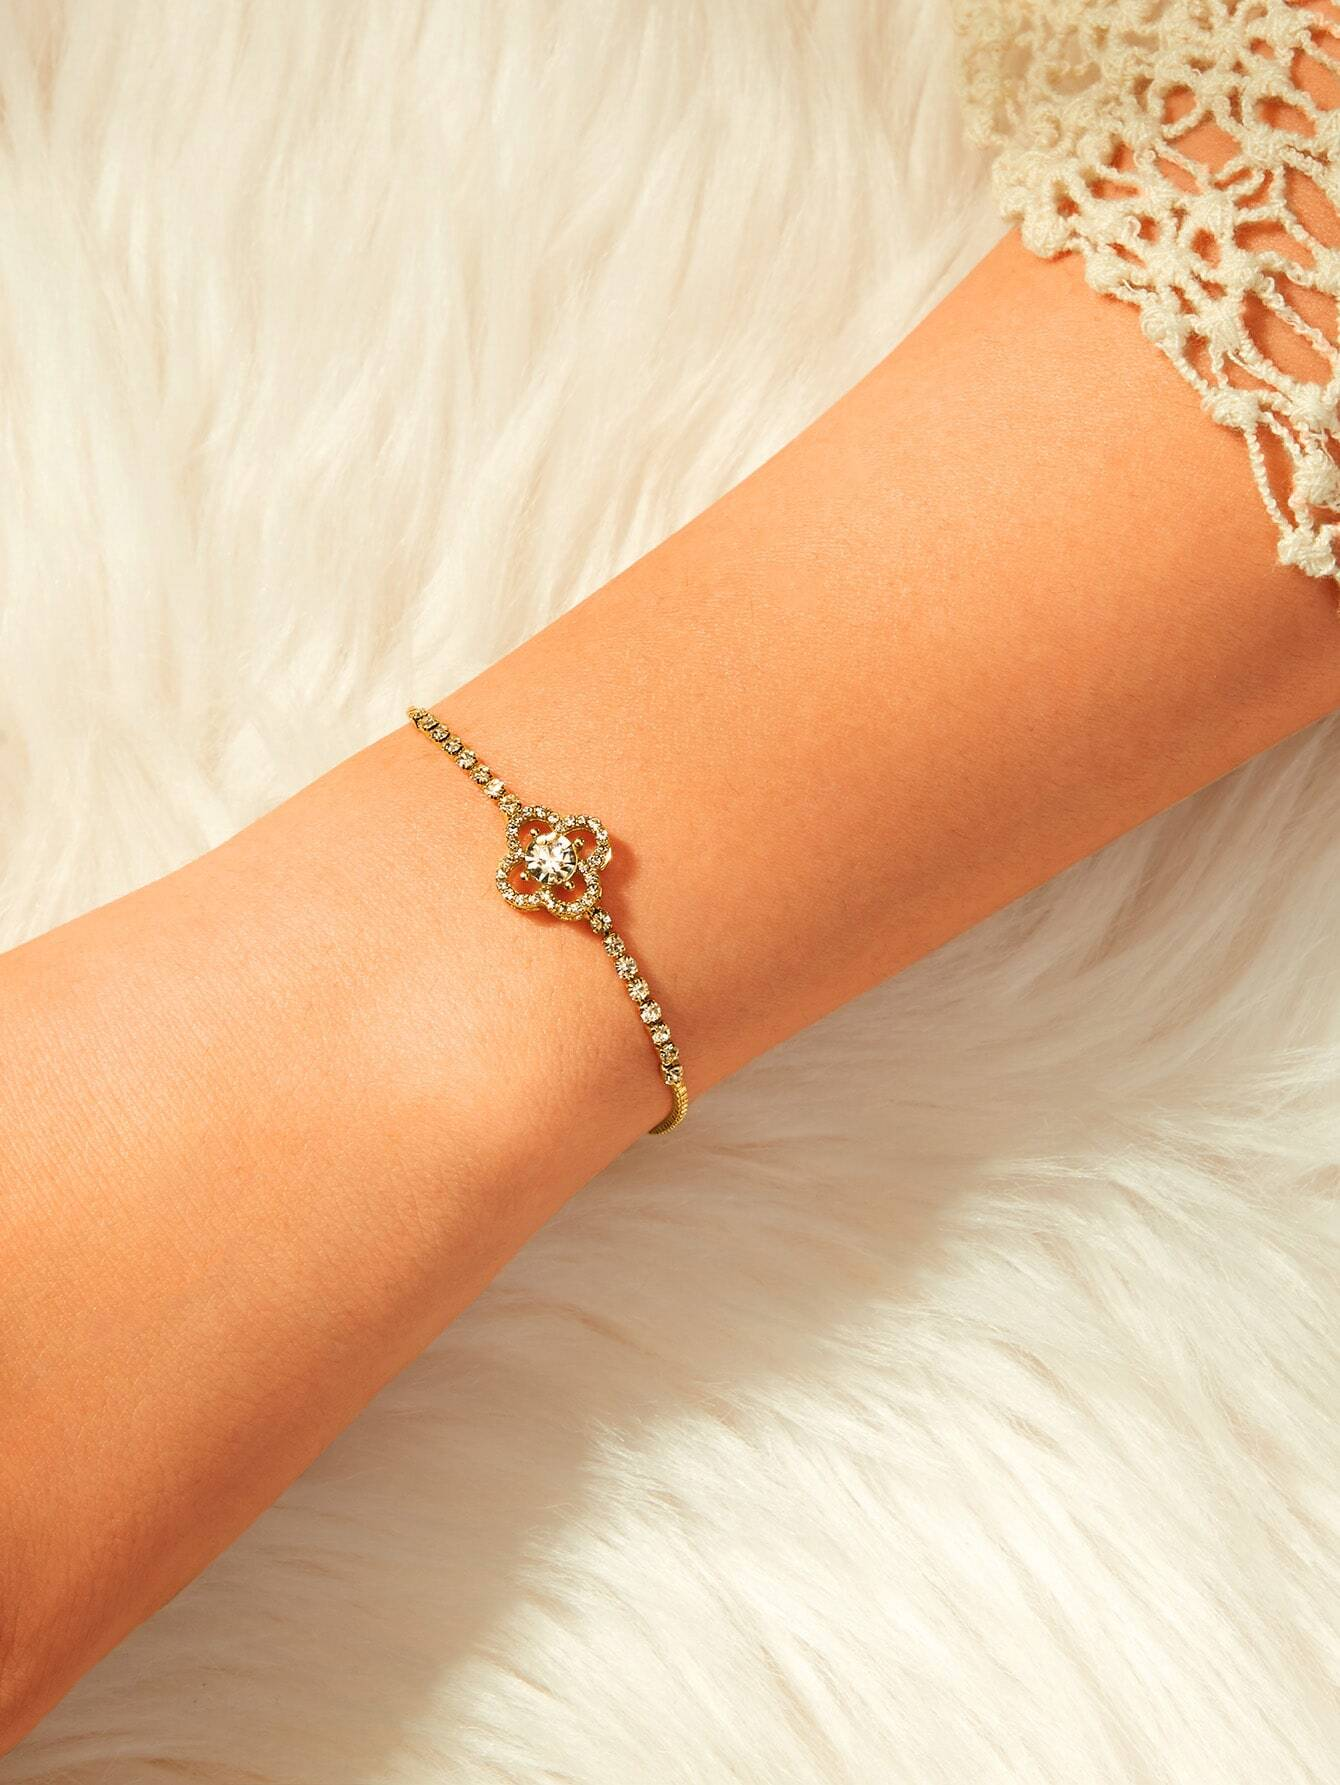 Rhinestone Engraved Clover Decor Golden Adjustable Chain 1pc Bracelet